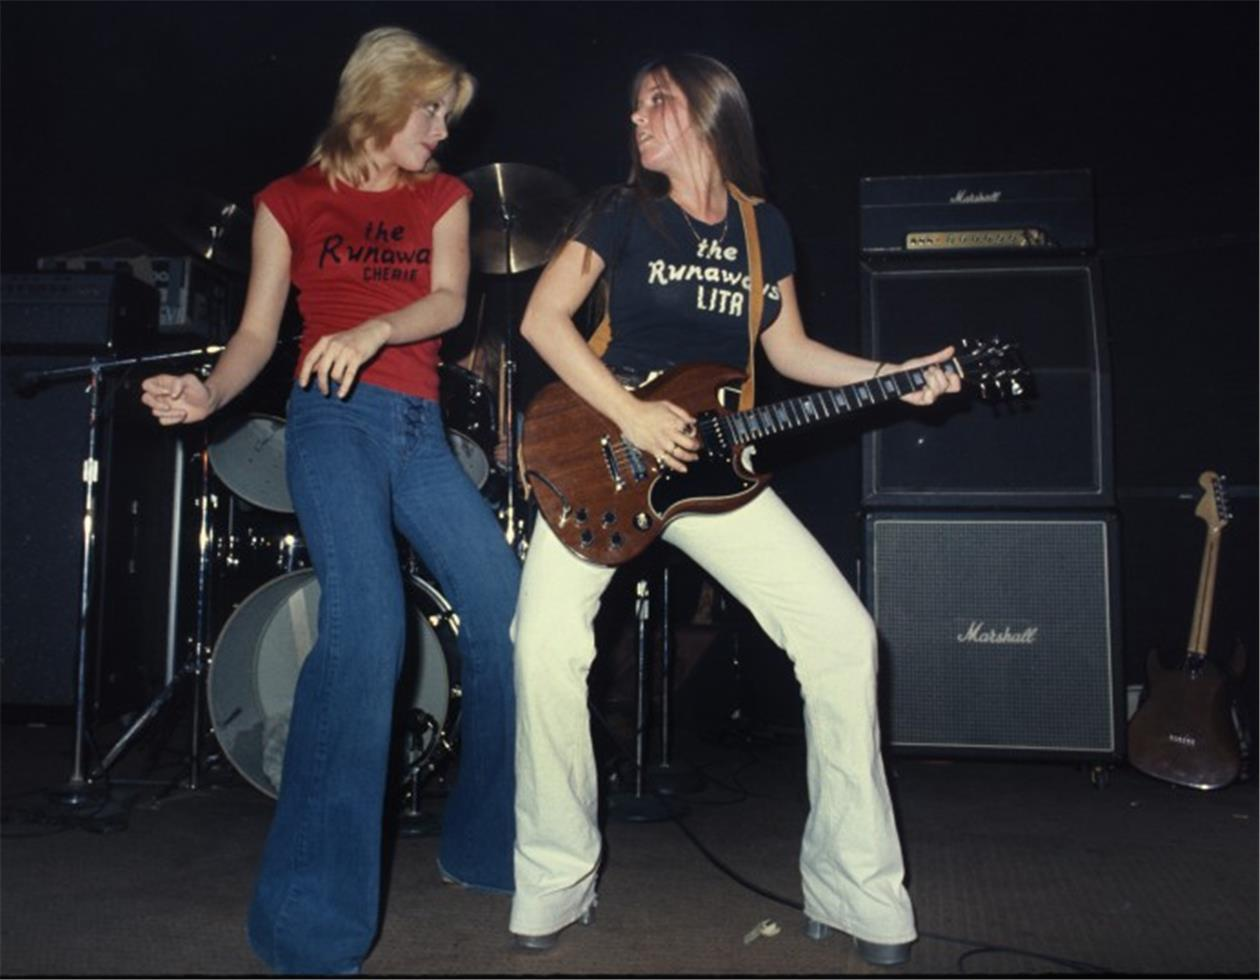 Lita Ford The Runaways 1970s Style